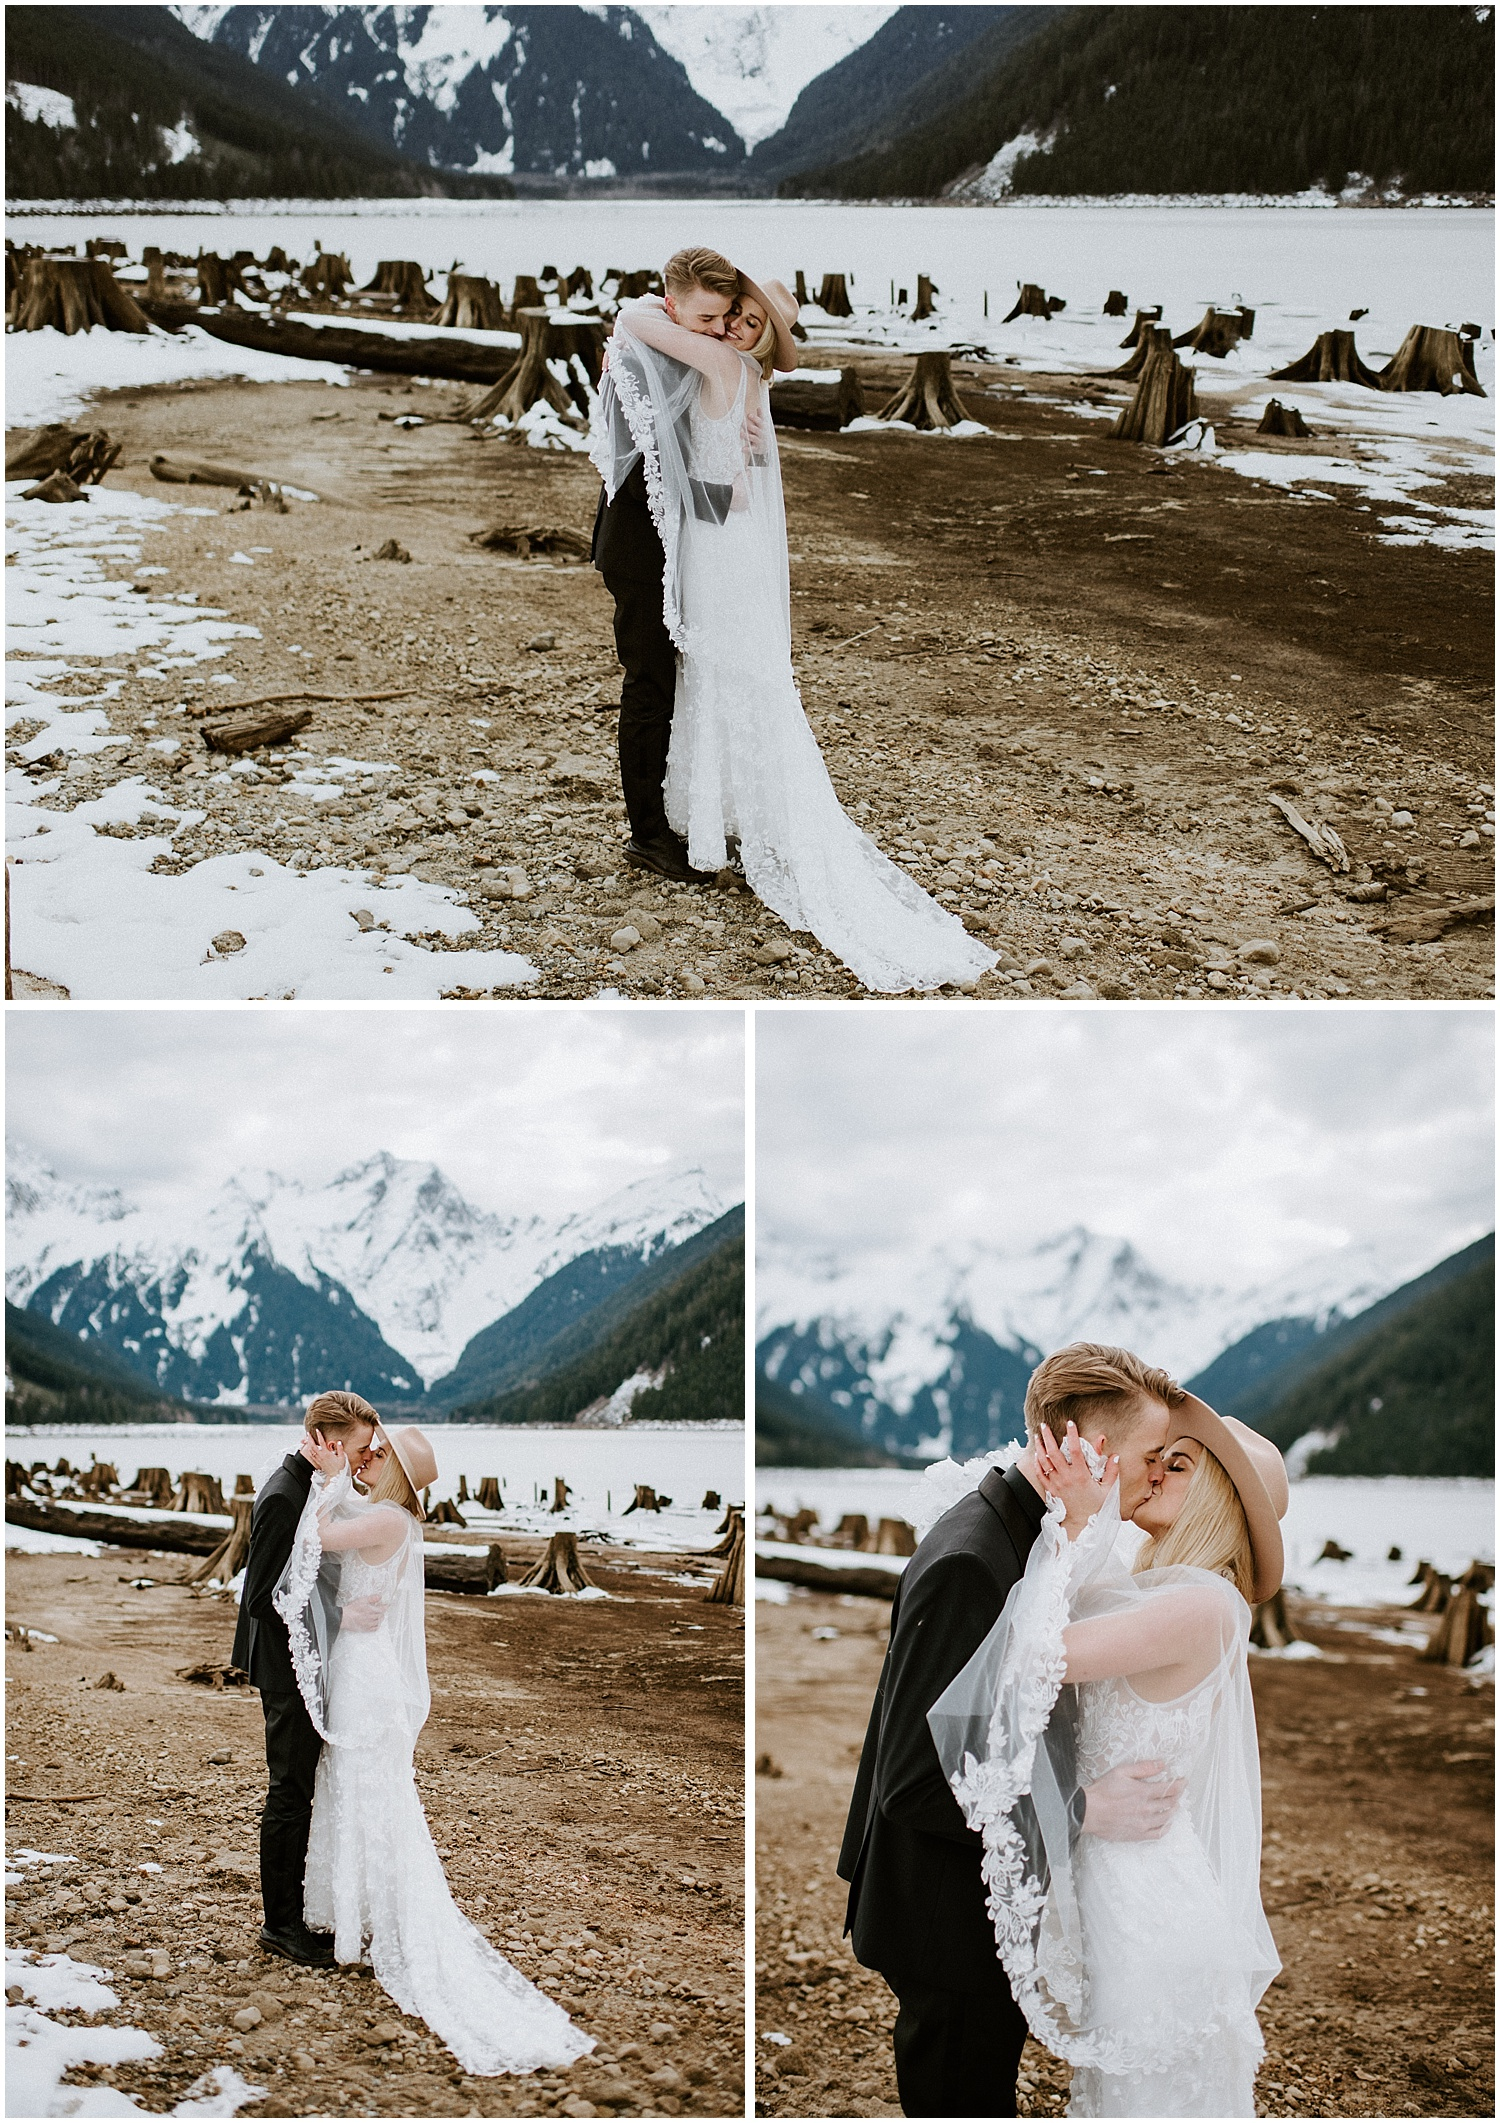 Jones_Lake_wedding_winter_elopement_vancouver_photographer_0265.jpg